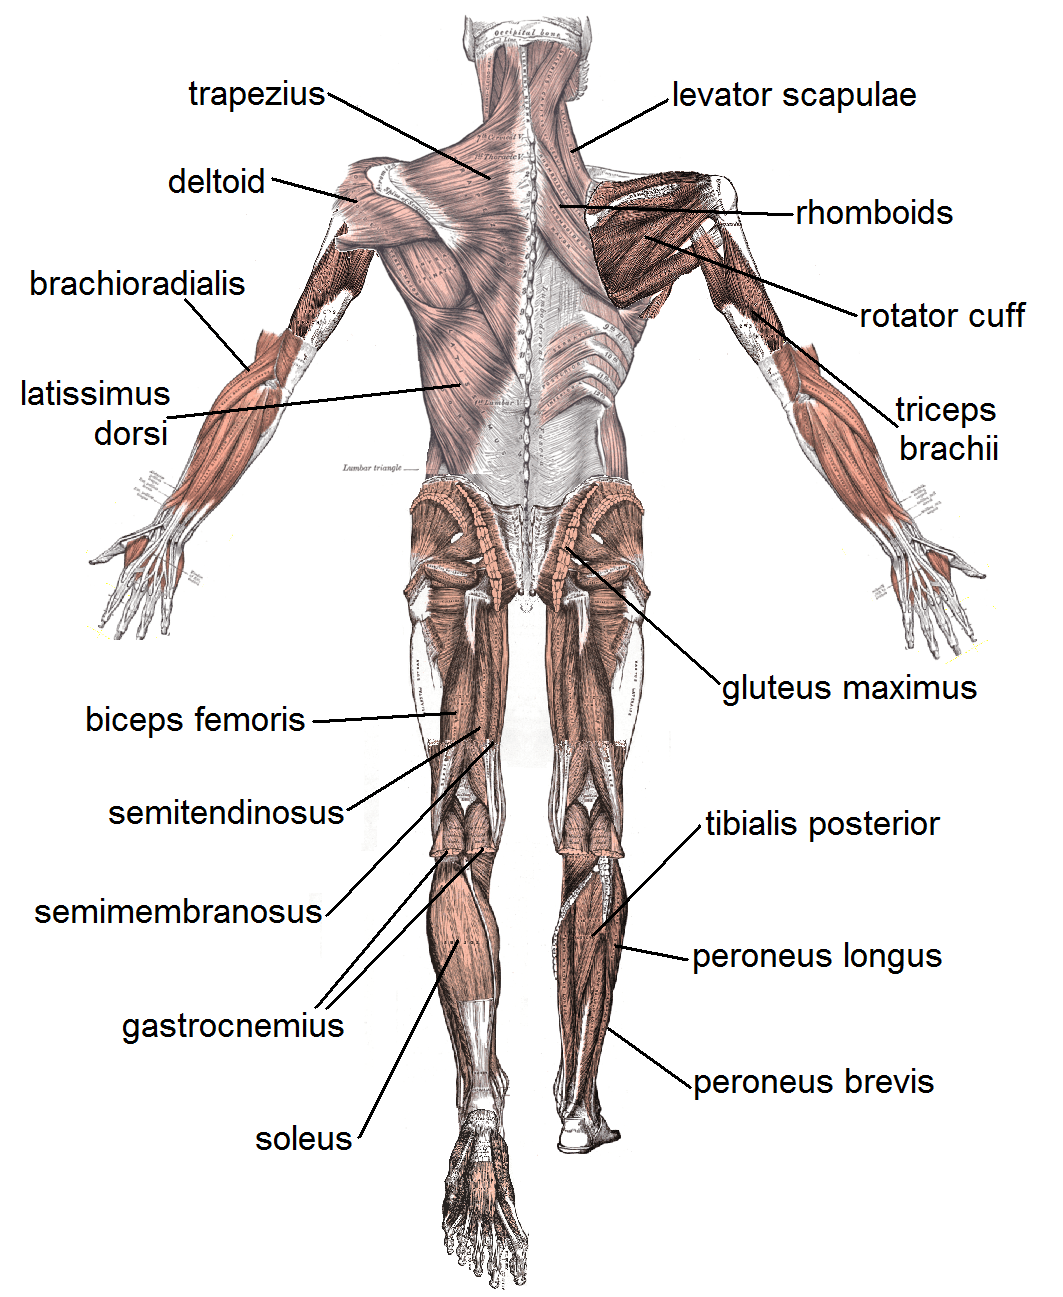 major muscle diagram to label wiring 4 pin trailer harness file posterior labeled png wikimedia commons